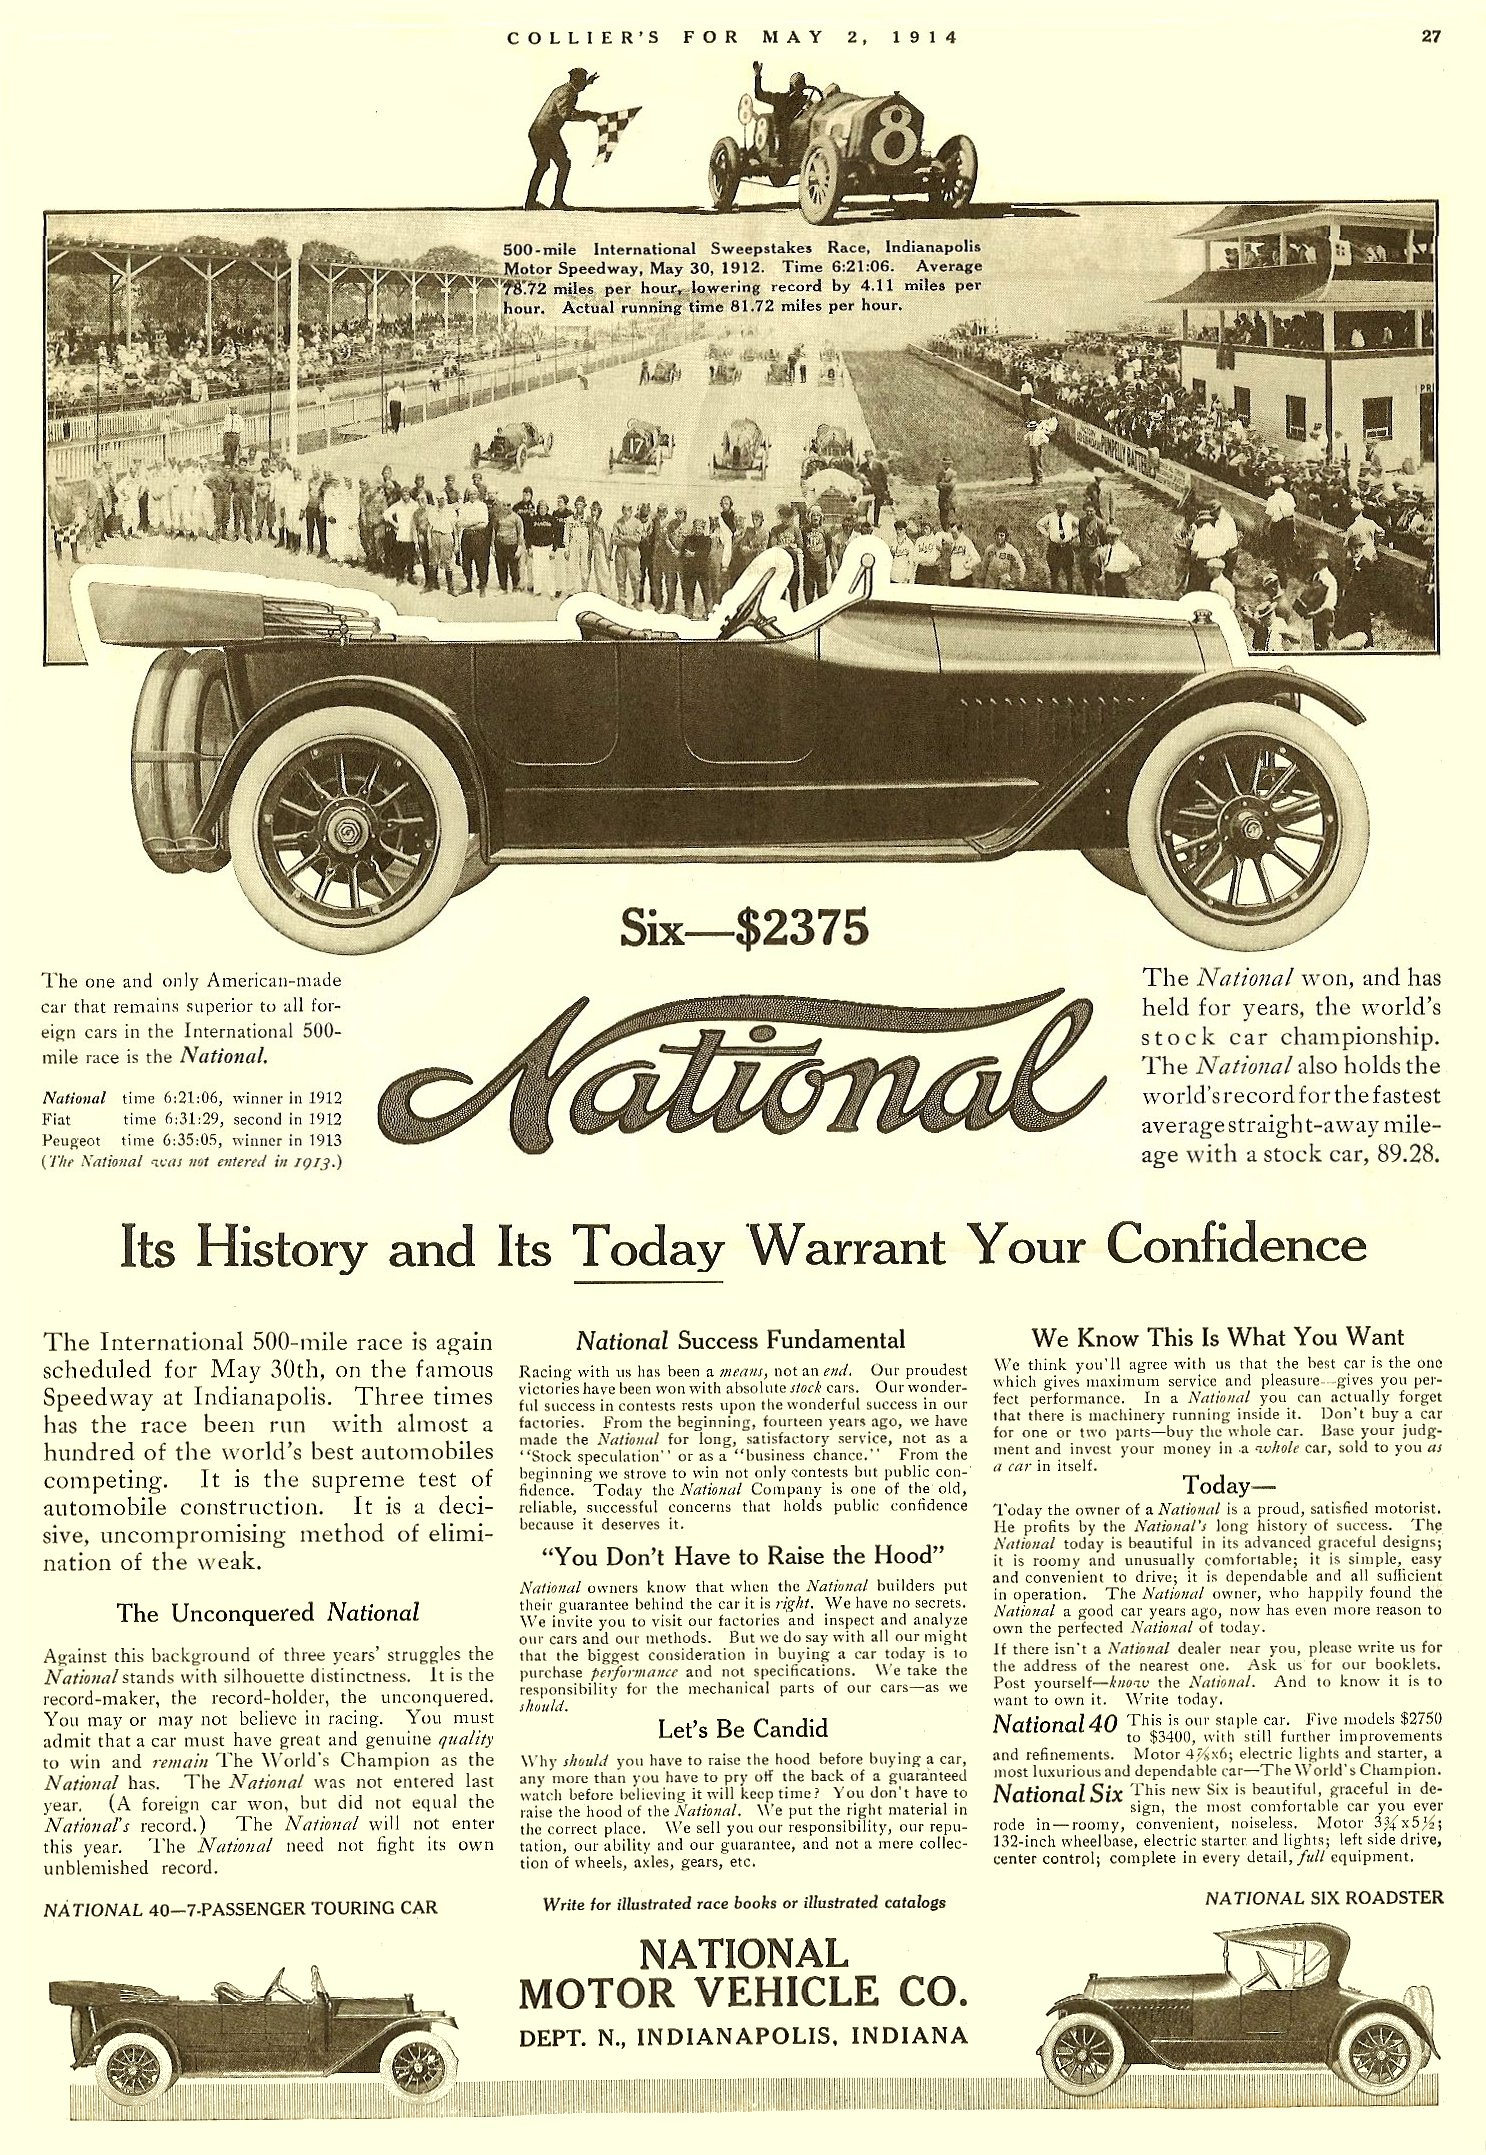 """1914 5 2 NATIONAL """"Its History and Its Today Warrant Your Confidence"""" COLLIER'S May 2, 1914 9.5″x14″ page 27"""